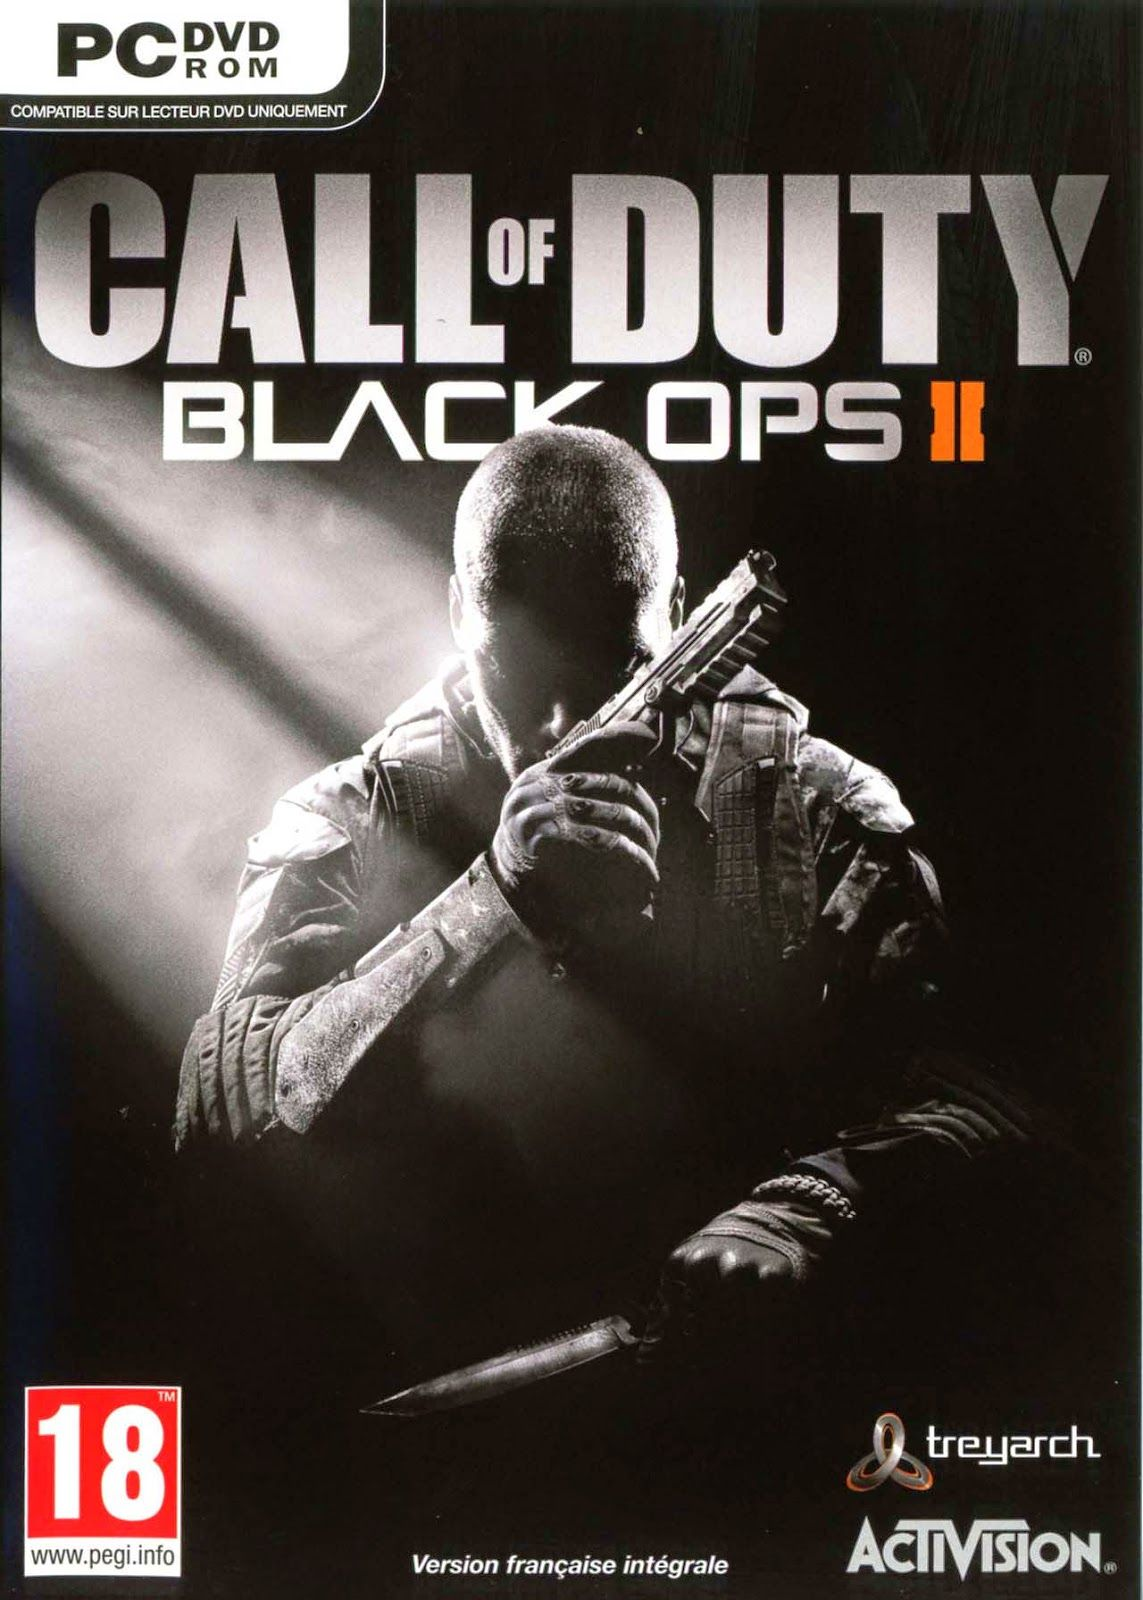 Call Of Duty Black Ops 2 Dvd Cover Games To Download Free Sony Playstation 4 Ps4 Cod Limited Edition Non